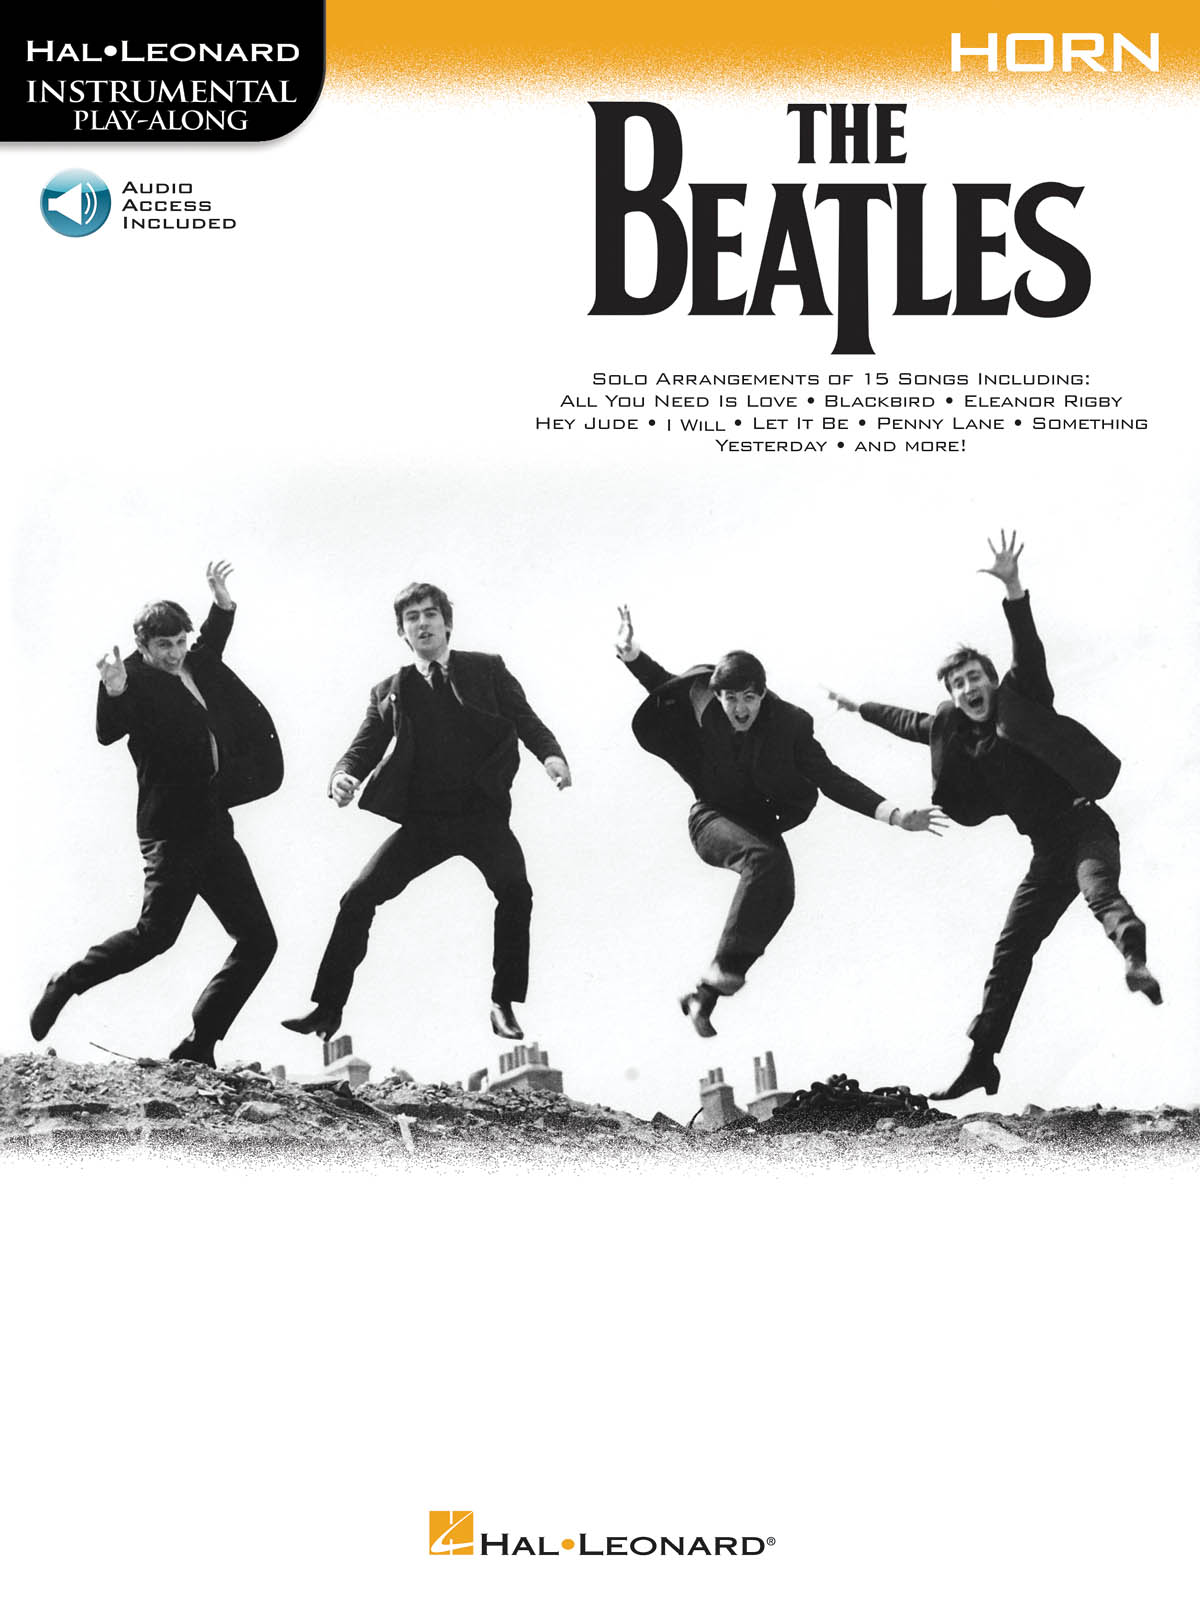 The Beatles - Instrumental Play-Along French Horn: French Horn Solo: Artist